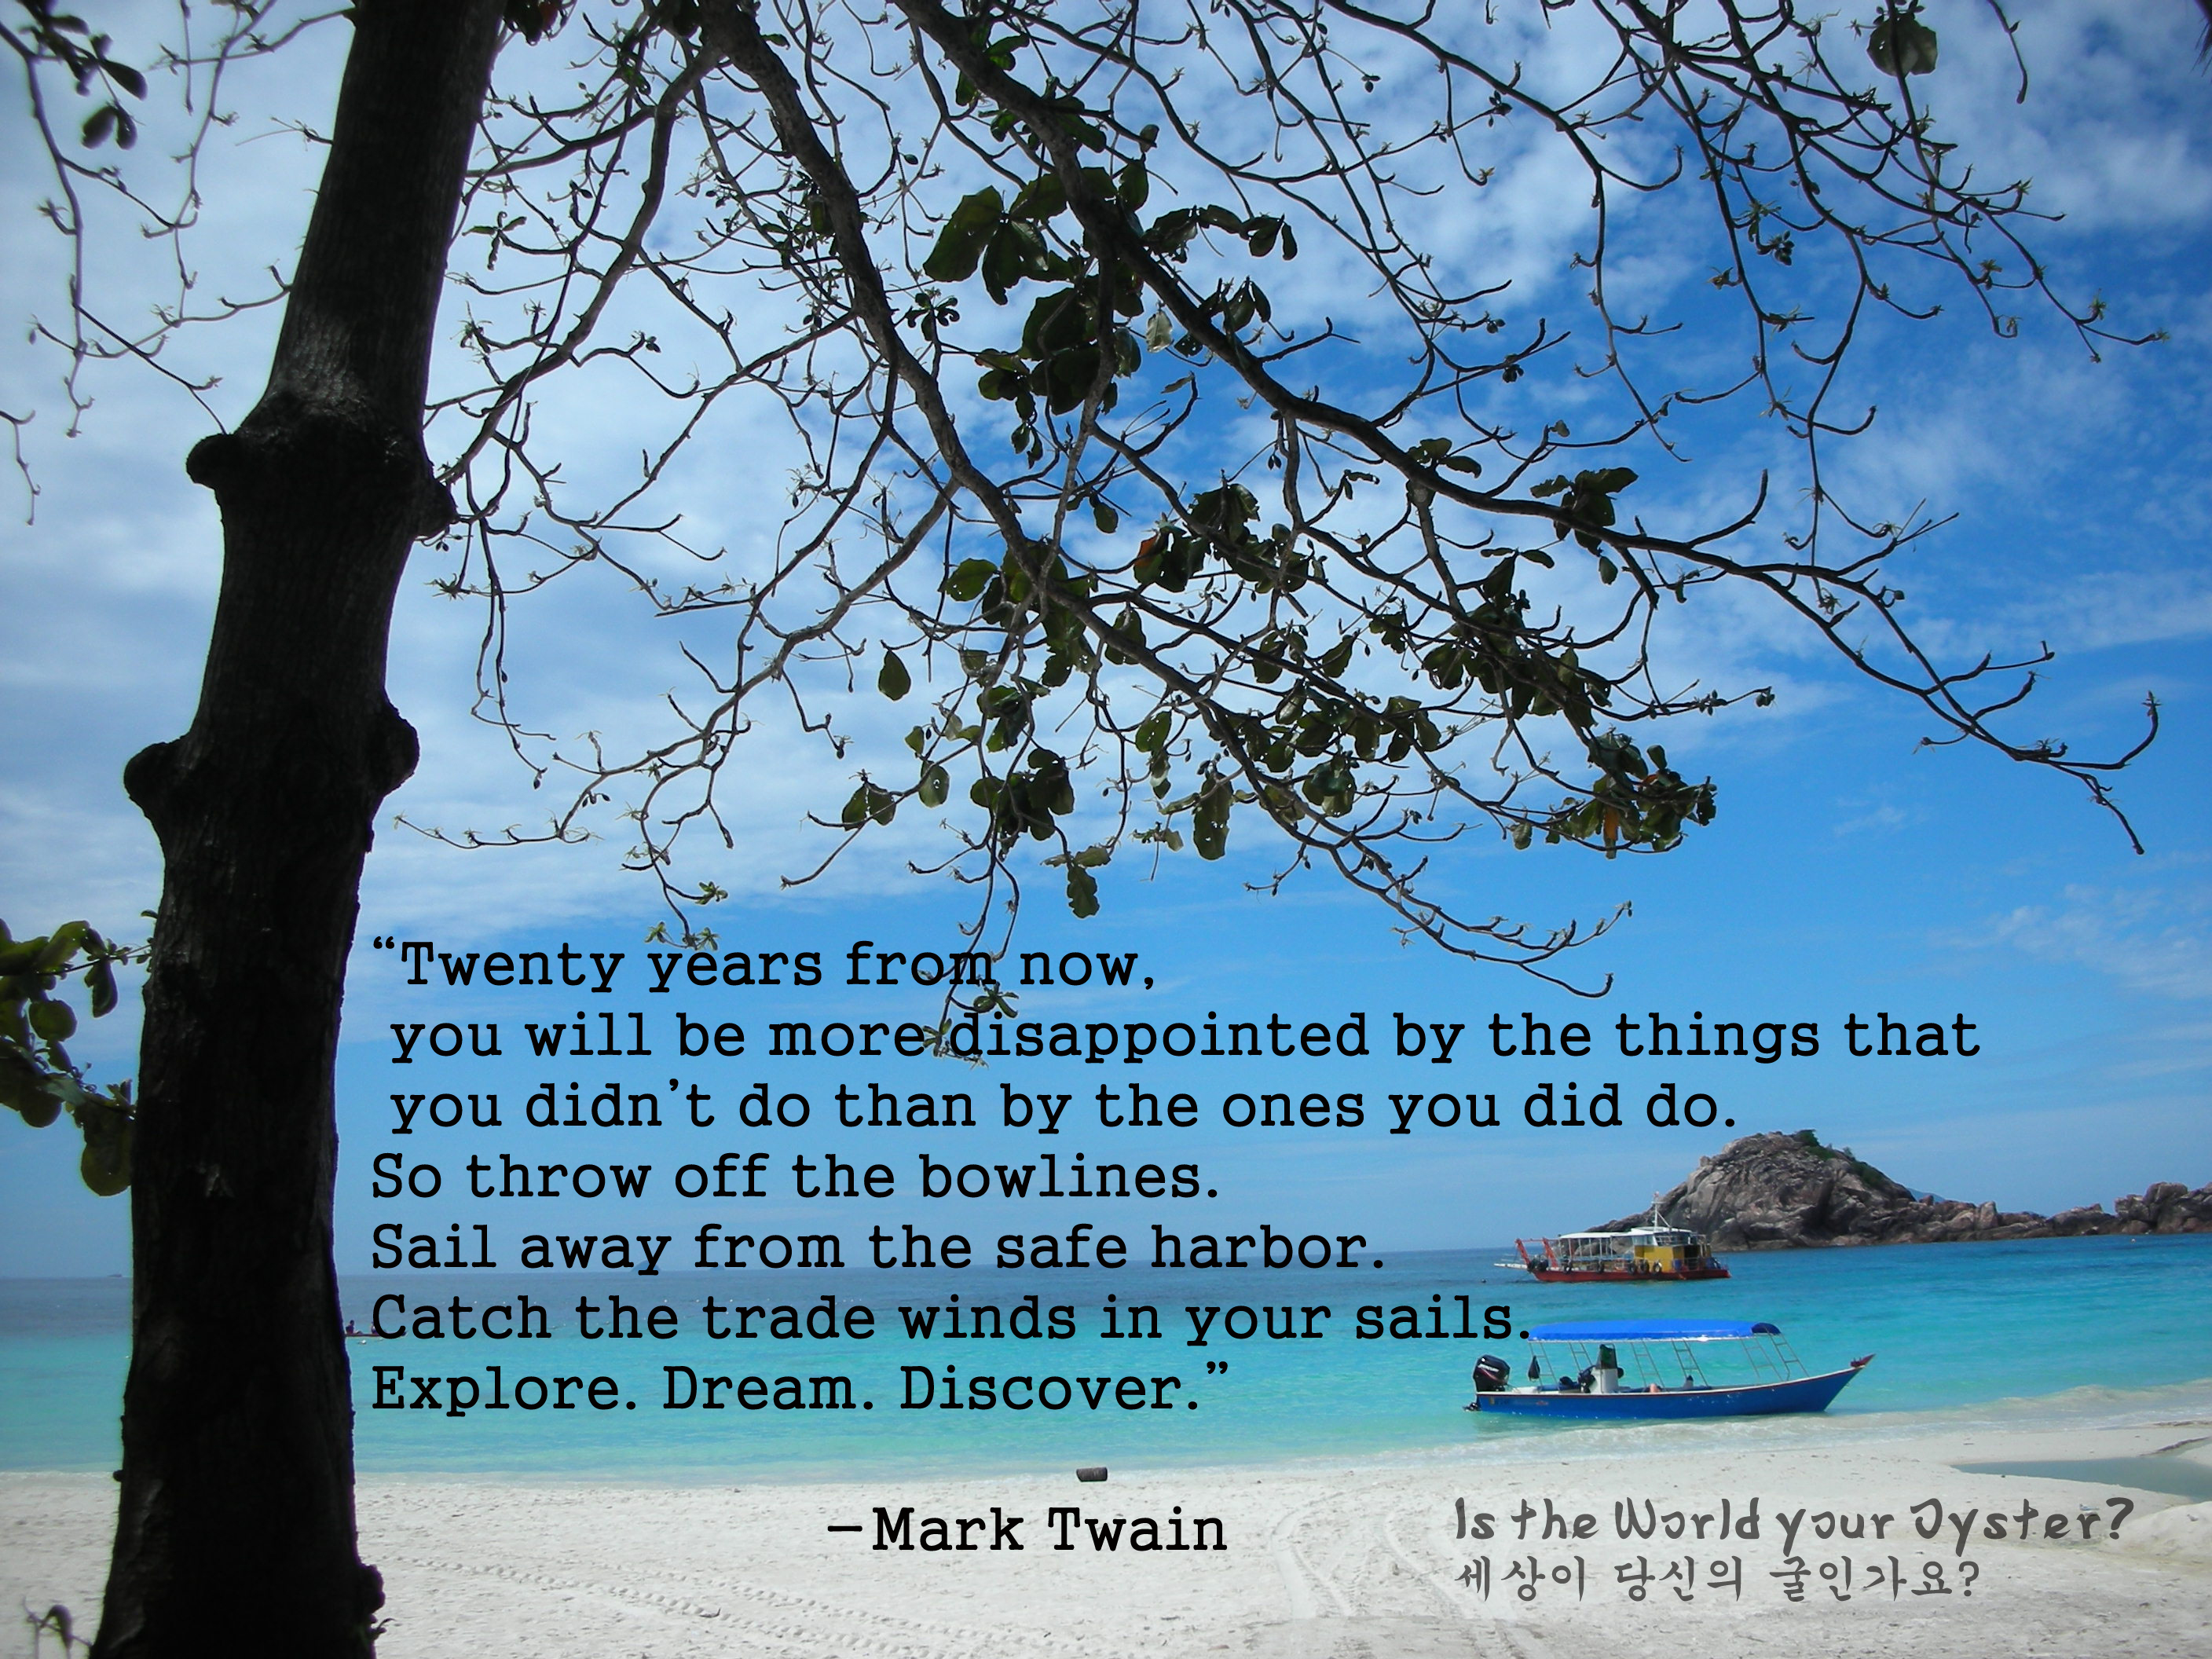 quote by mark twain is the world your oyster  quote by mark twain